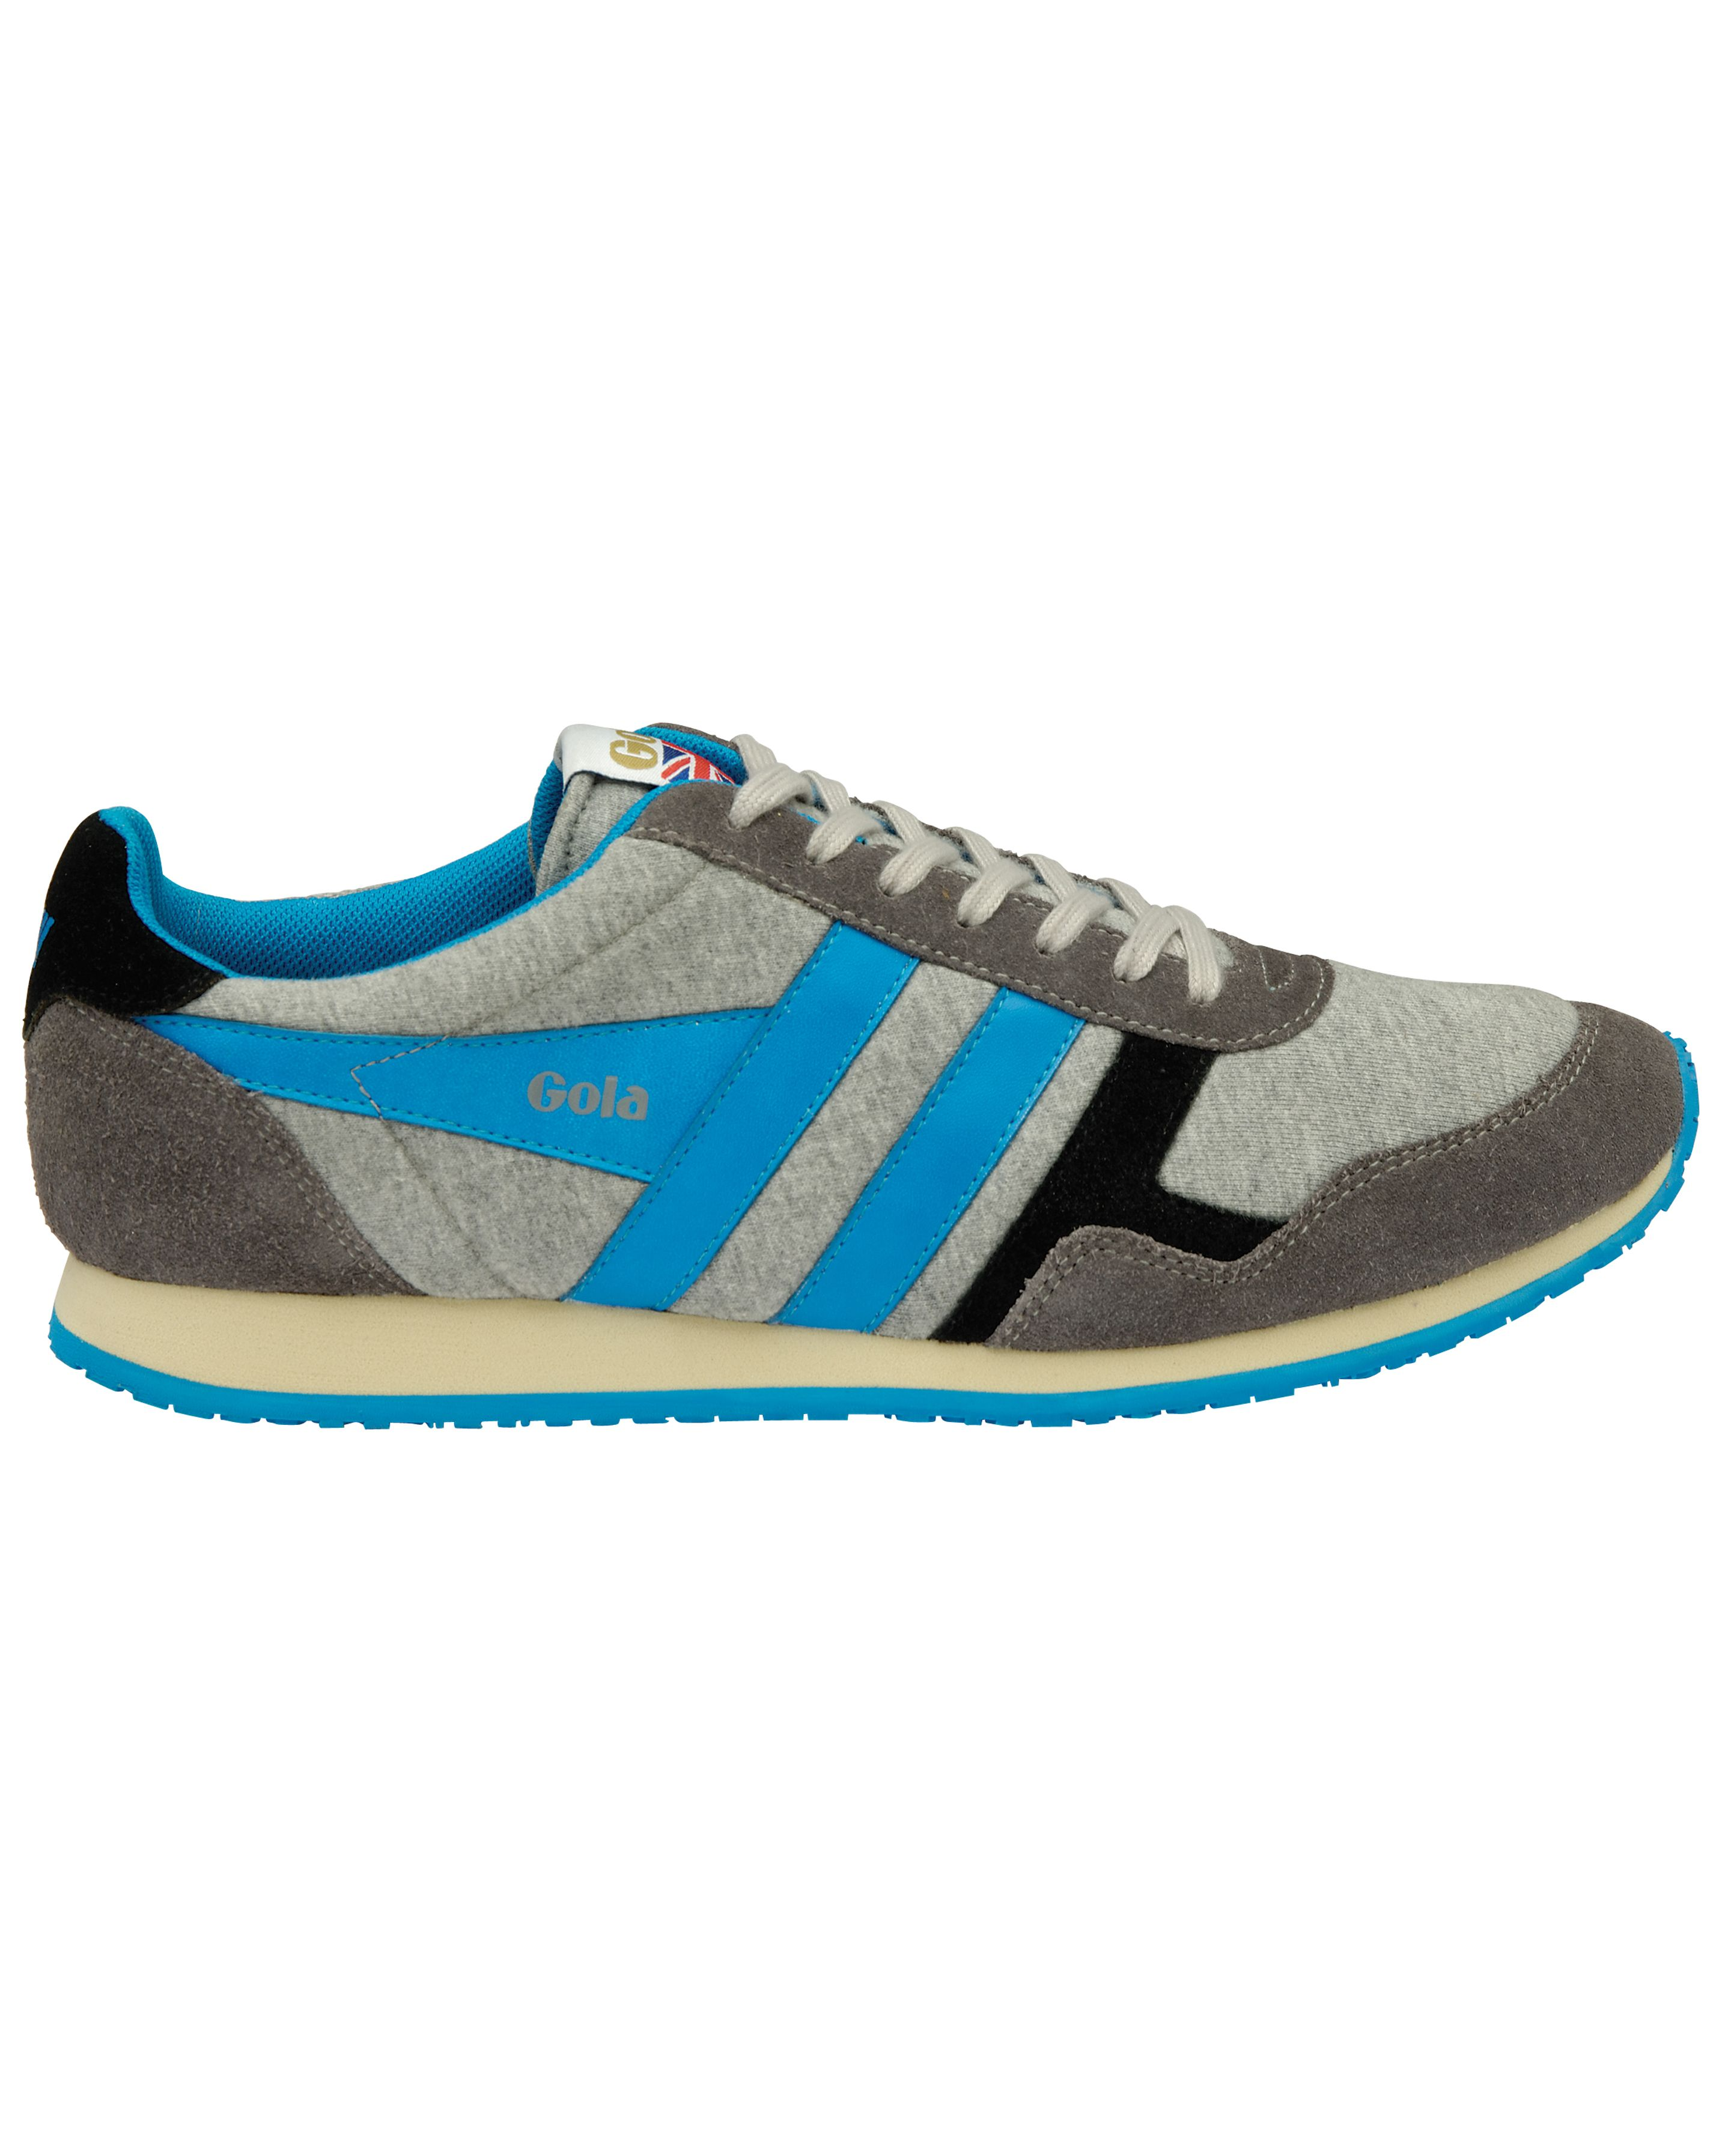 Spirit Jersey classic trainer shoes